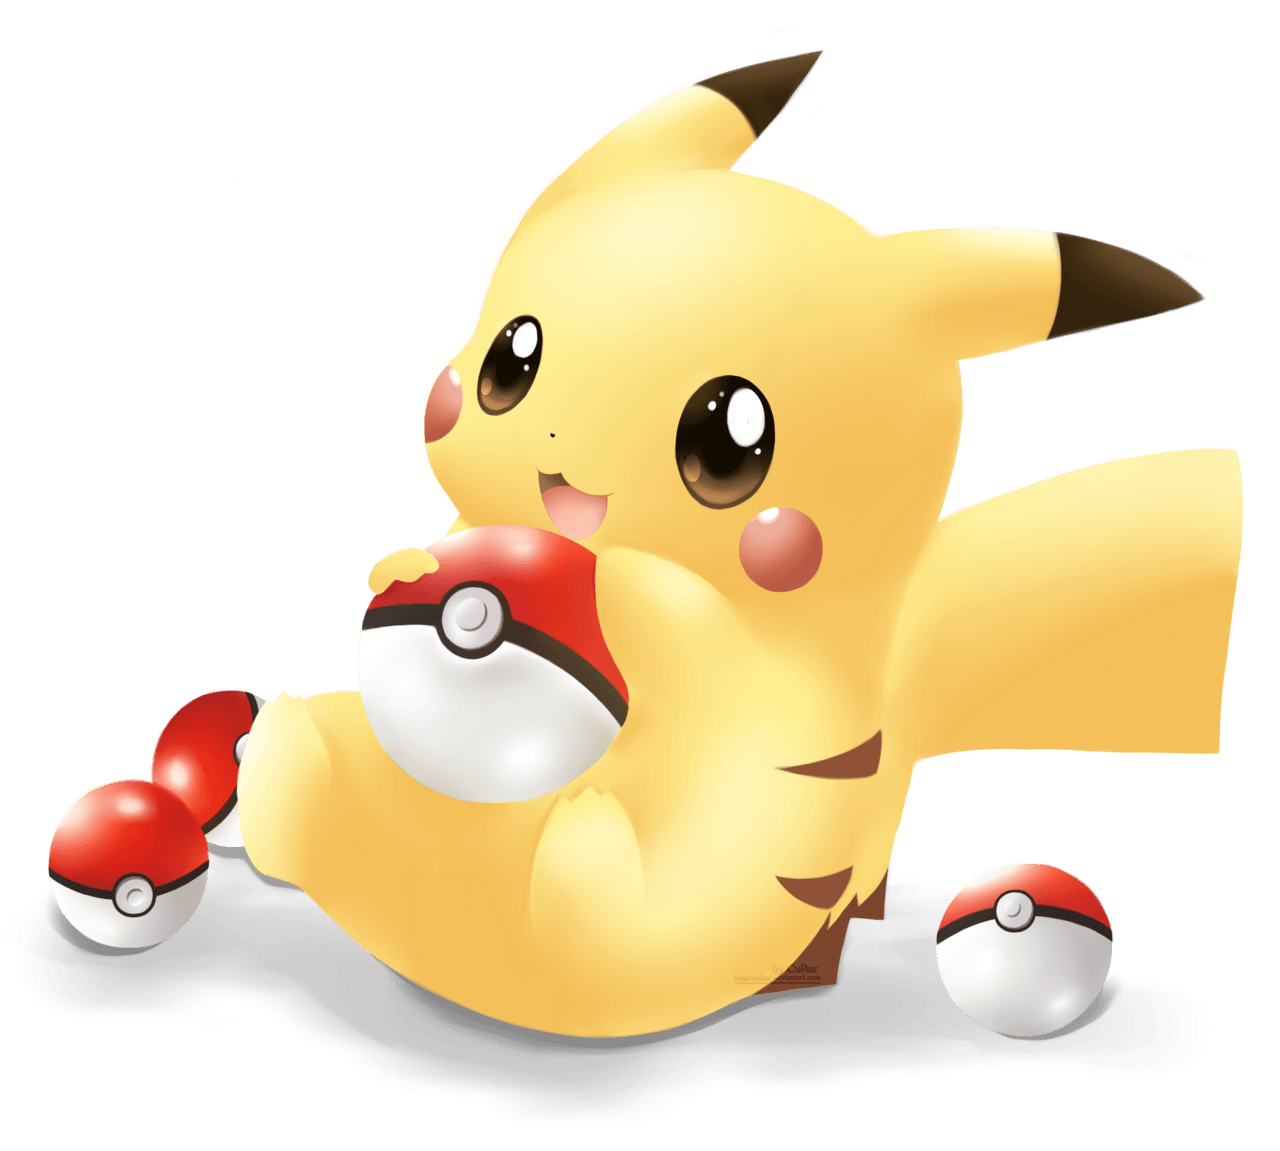 Pokemon Cute Pikachu Wallpapers Top Free Pokemon Cute Pikachu Backgrounds Wallpaperaccess